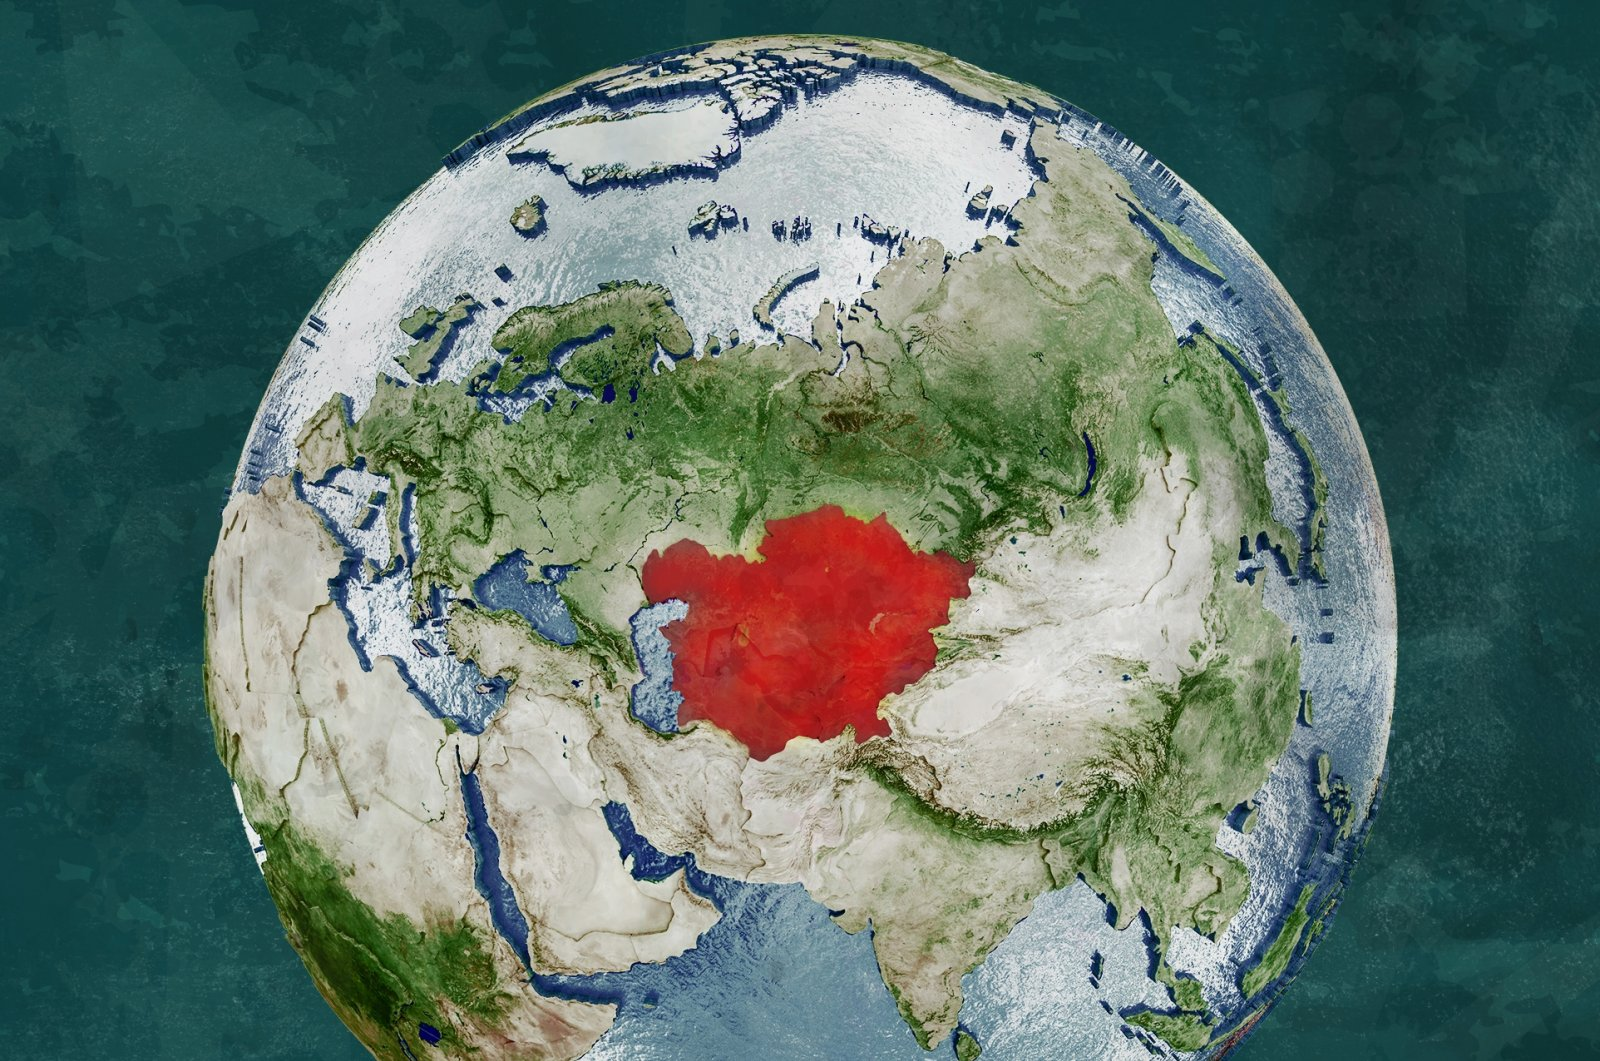 The photo illustration shows the globe map with the Central Asian region in red. (Photo by Shutterstock)